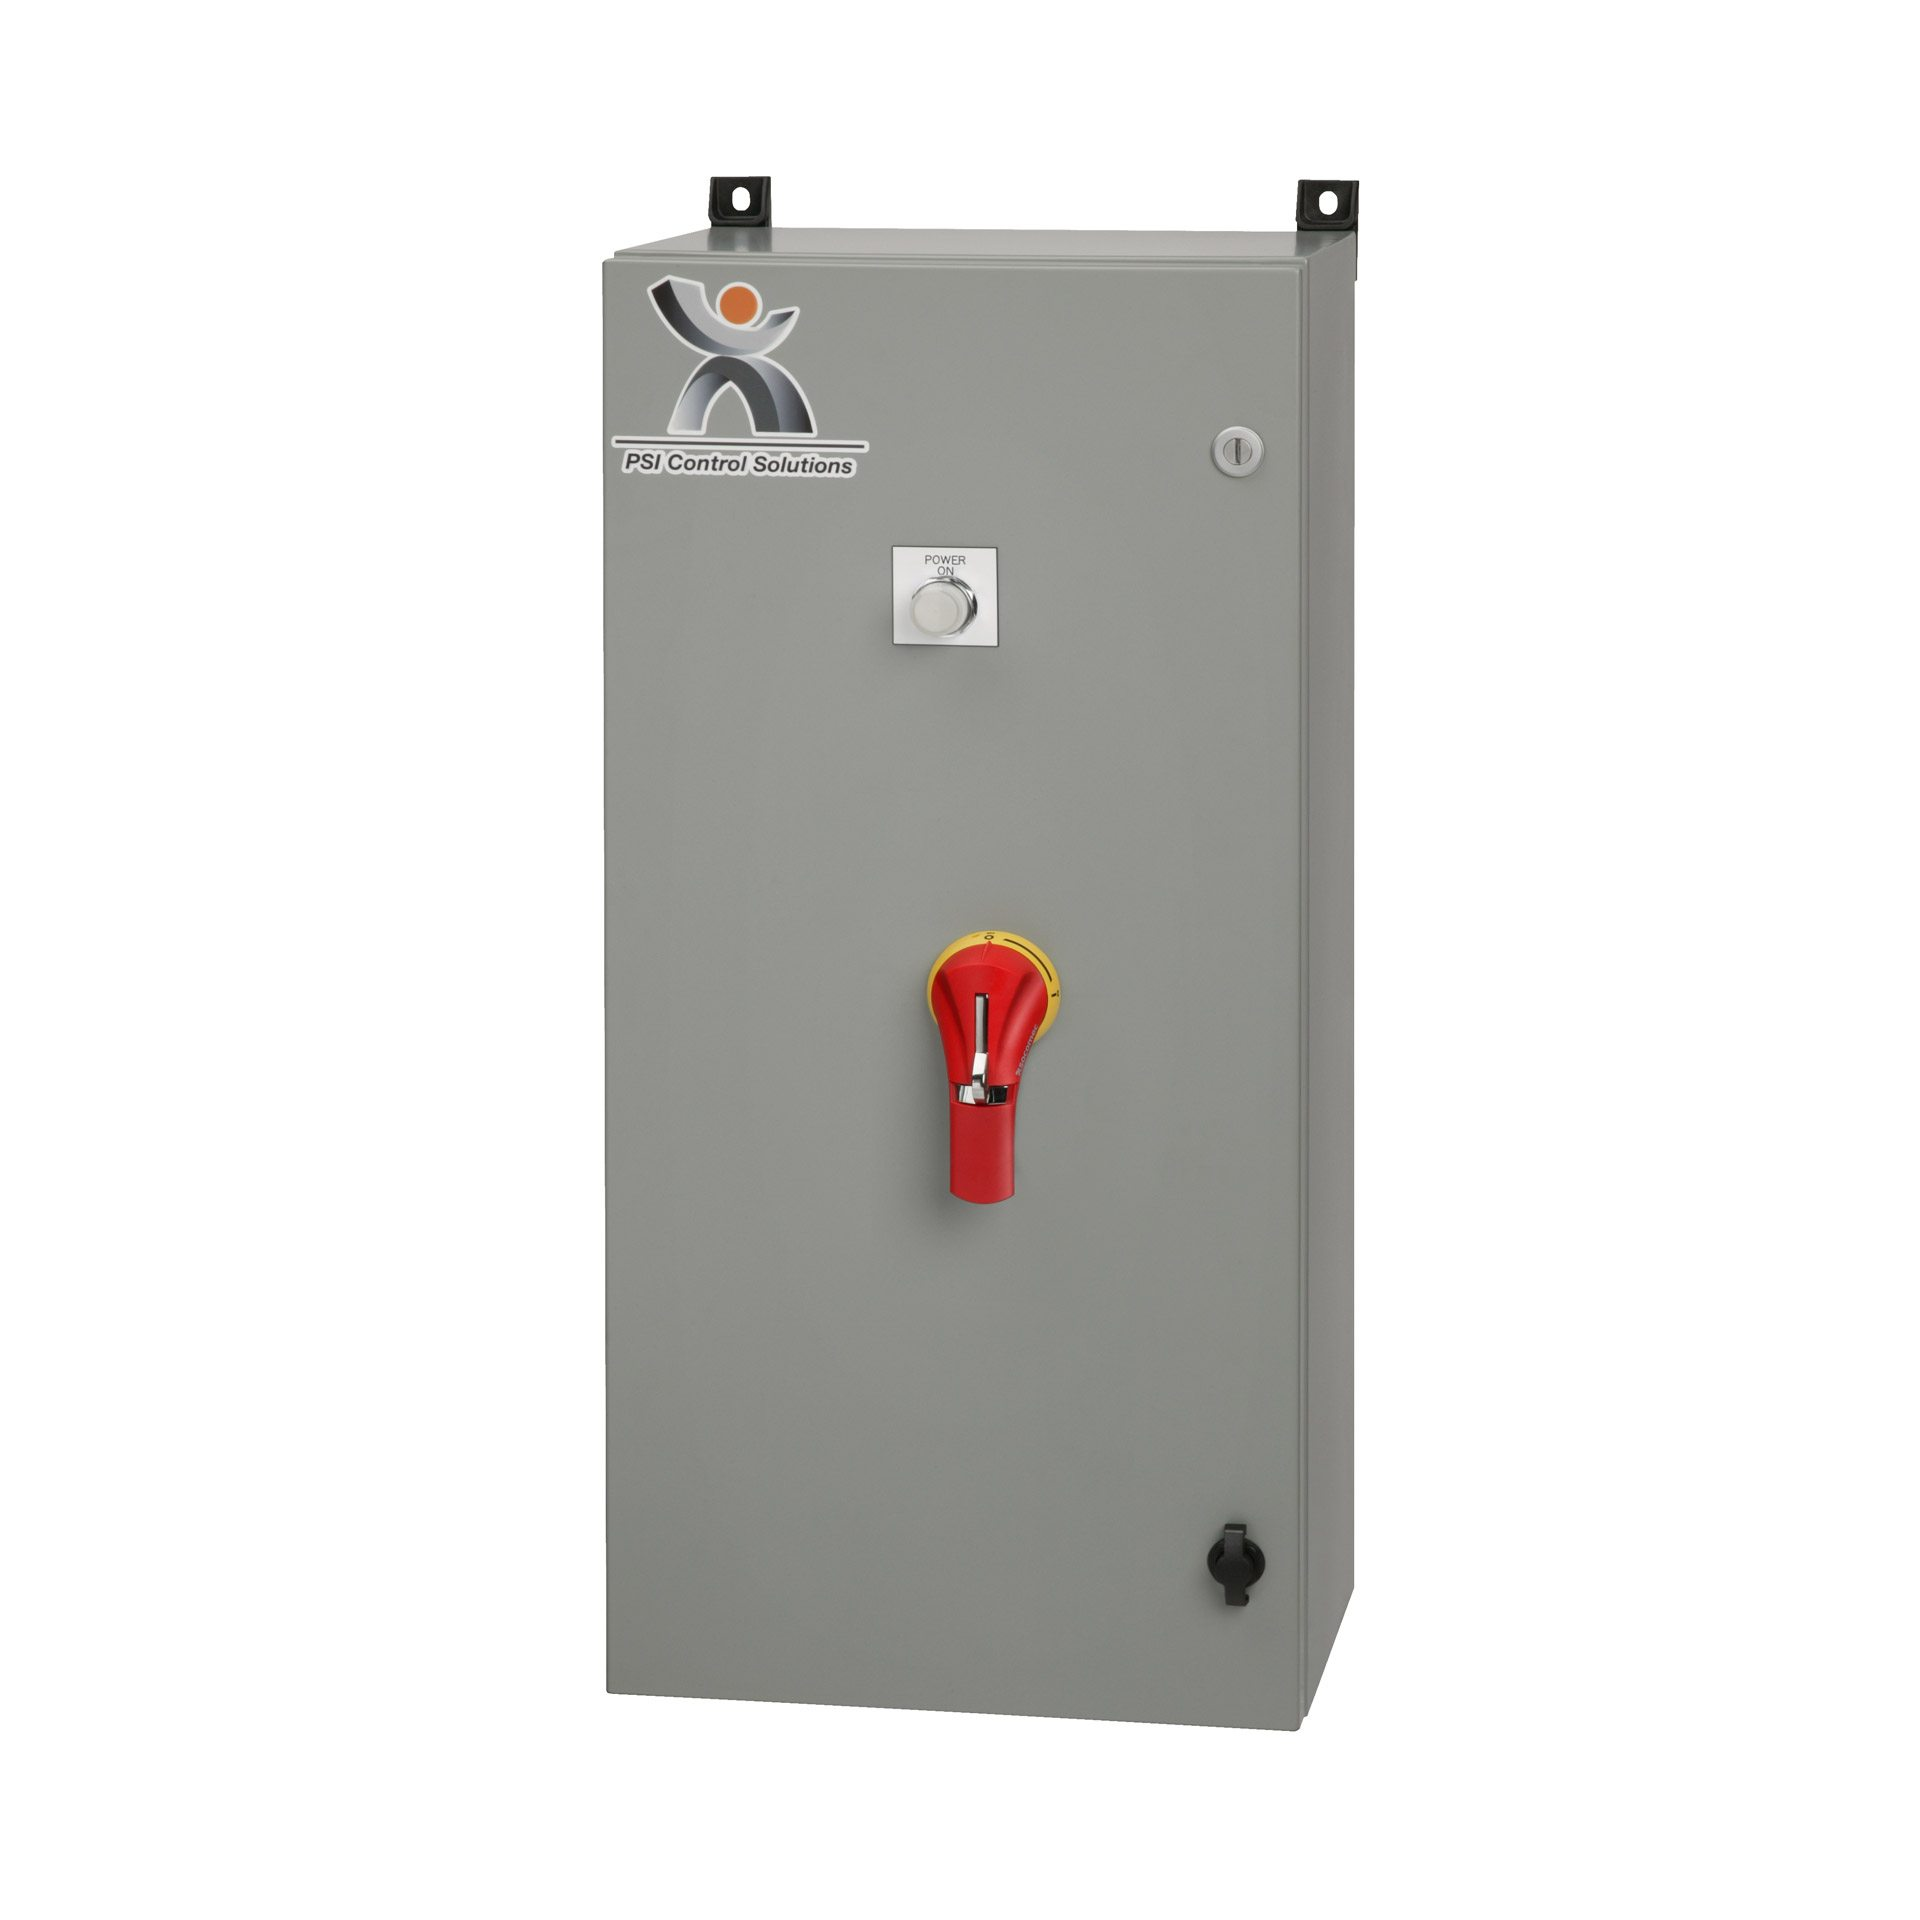 Door Switch Safety : Safety switch disconnect